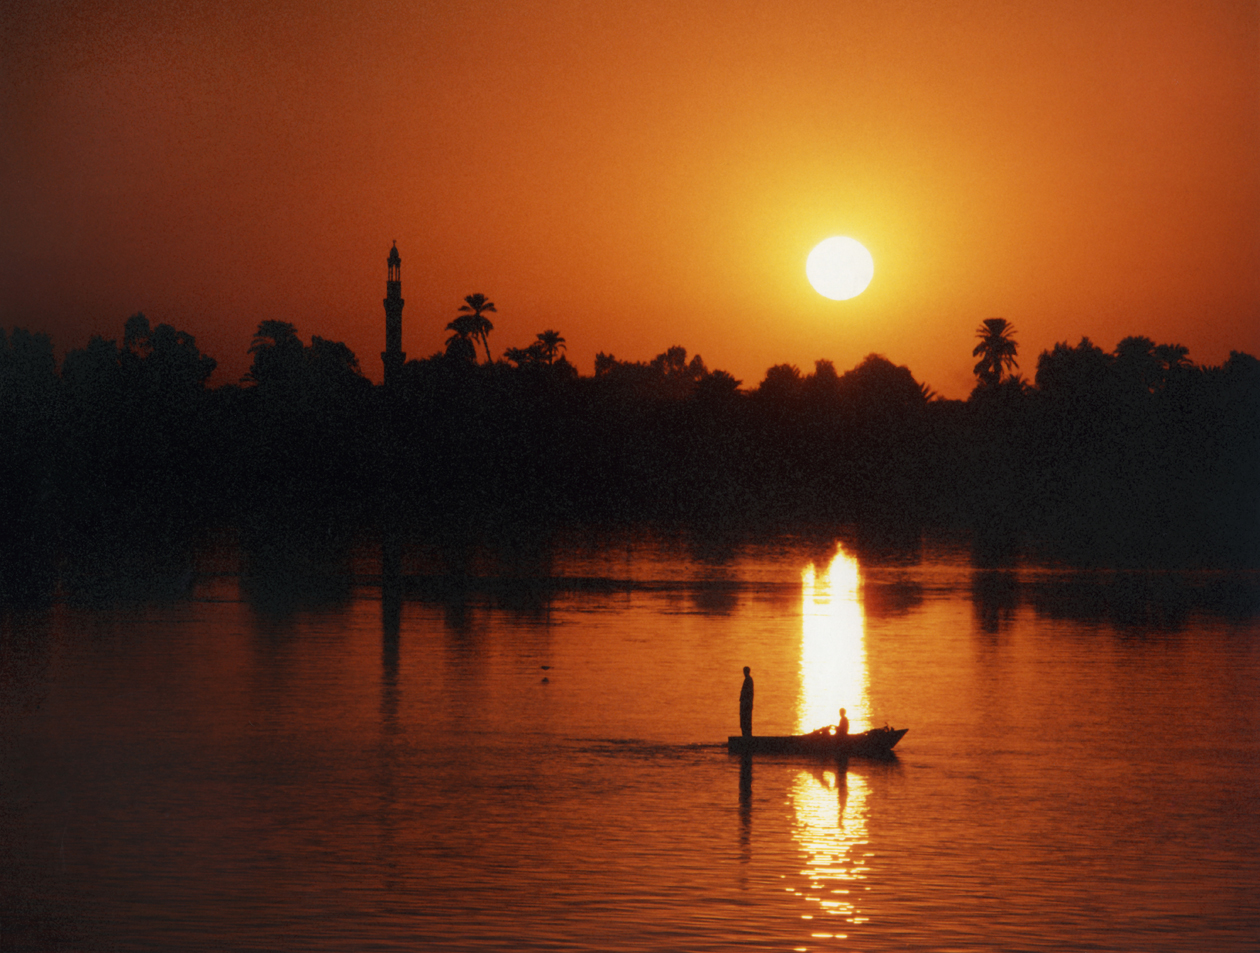 Sunset on the Nile, Egypt